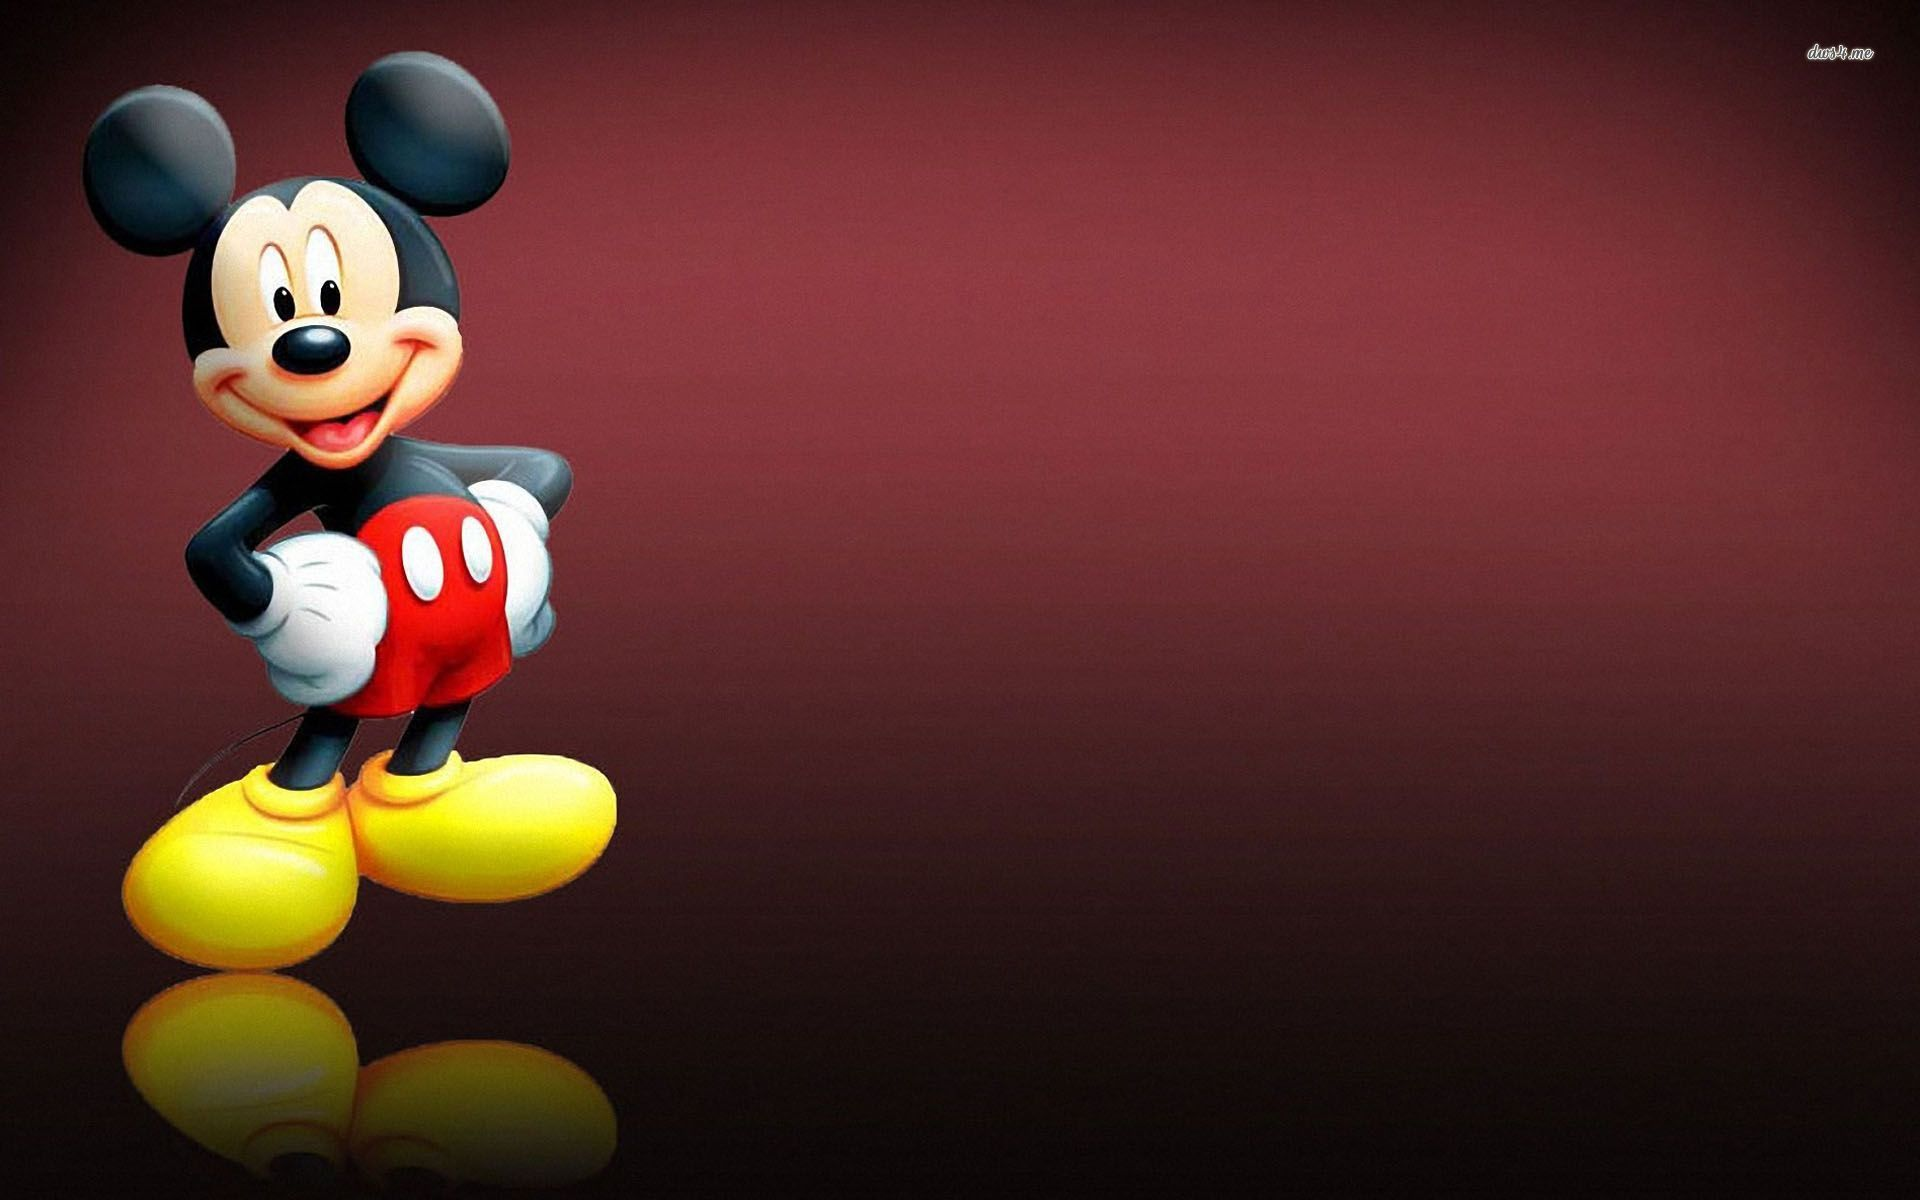 Mickey Mouse Desktop Background wallpapers HD 1920x1200